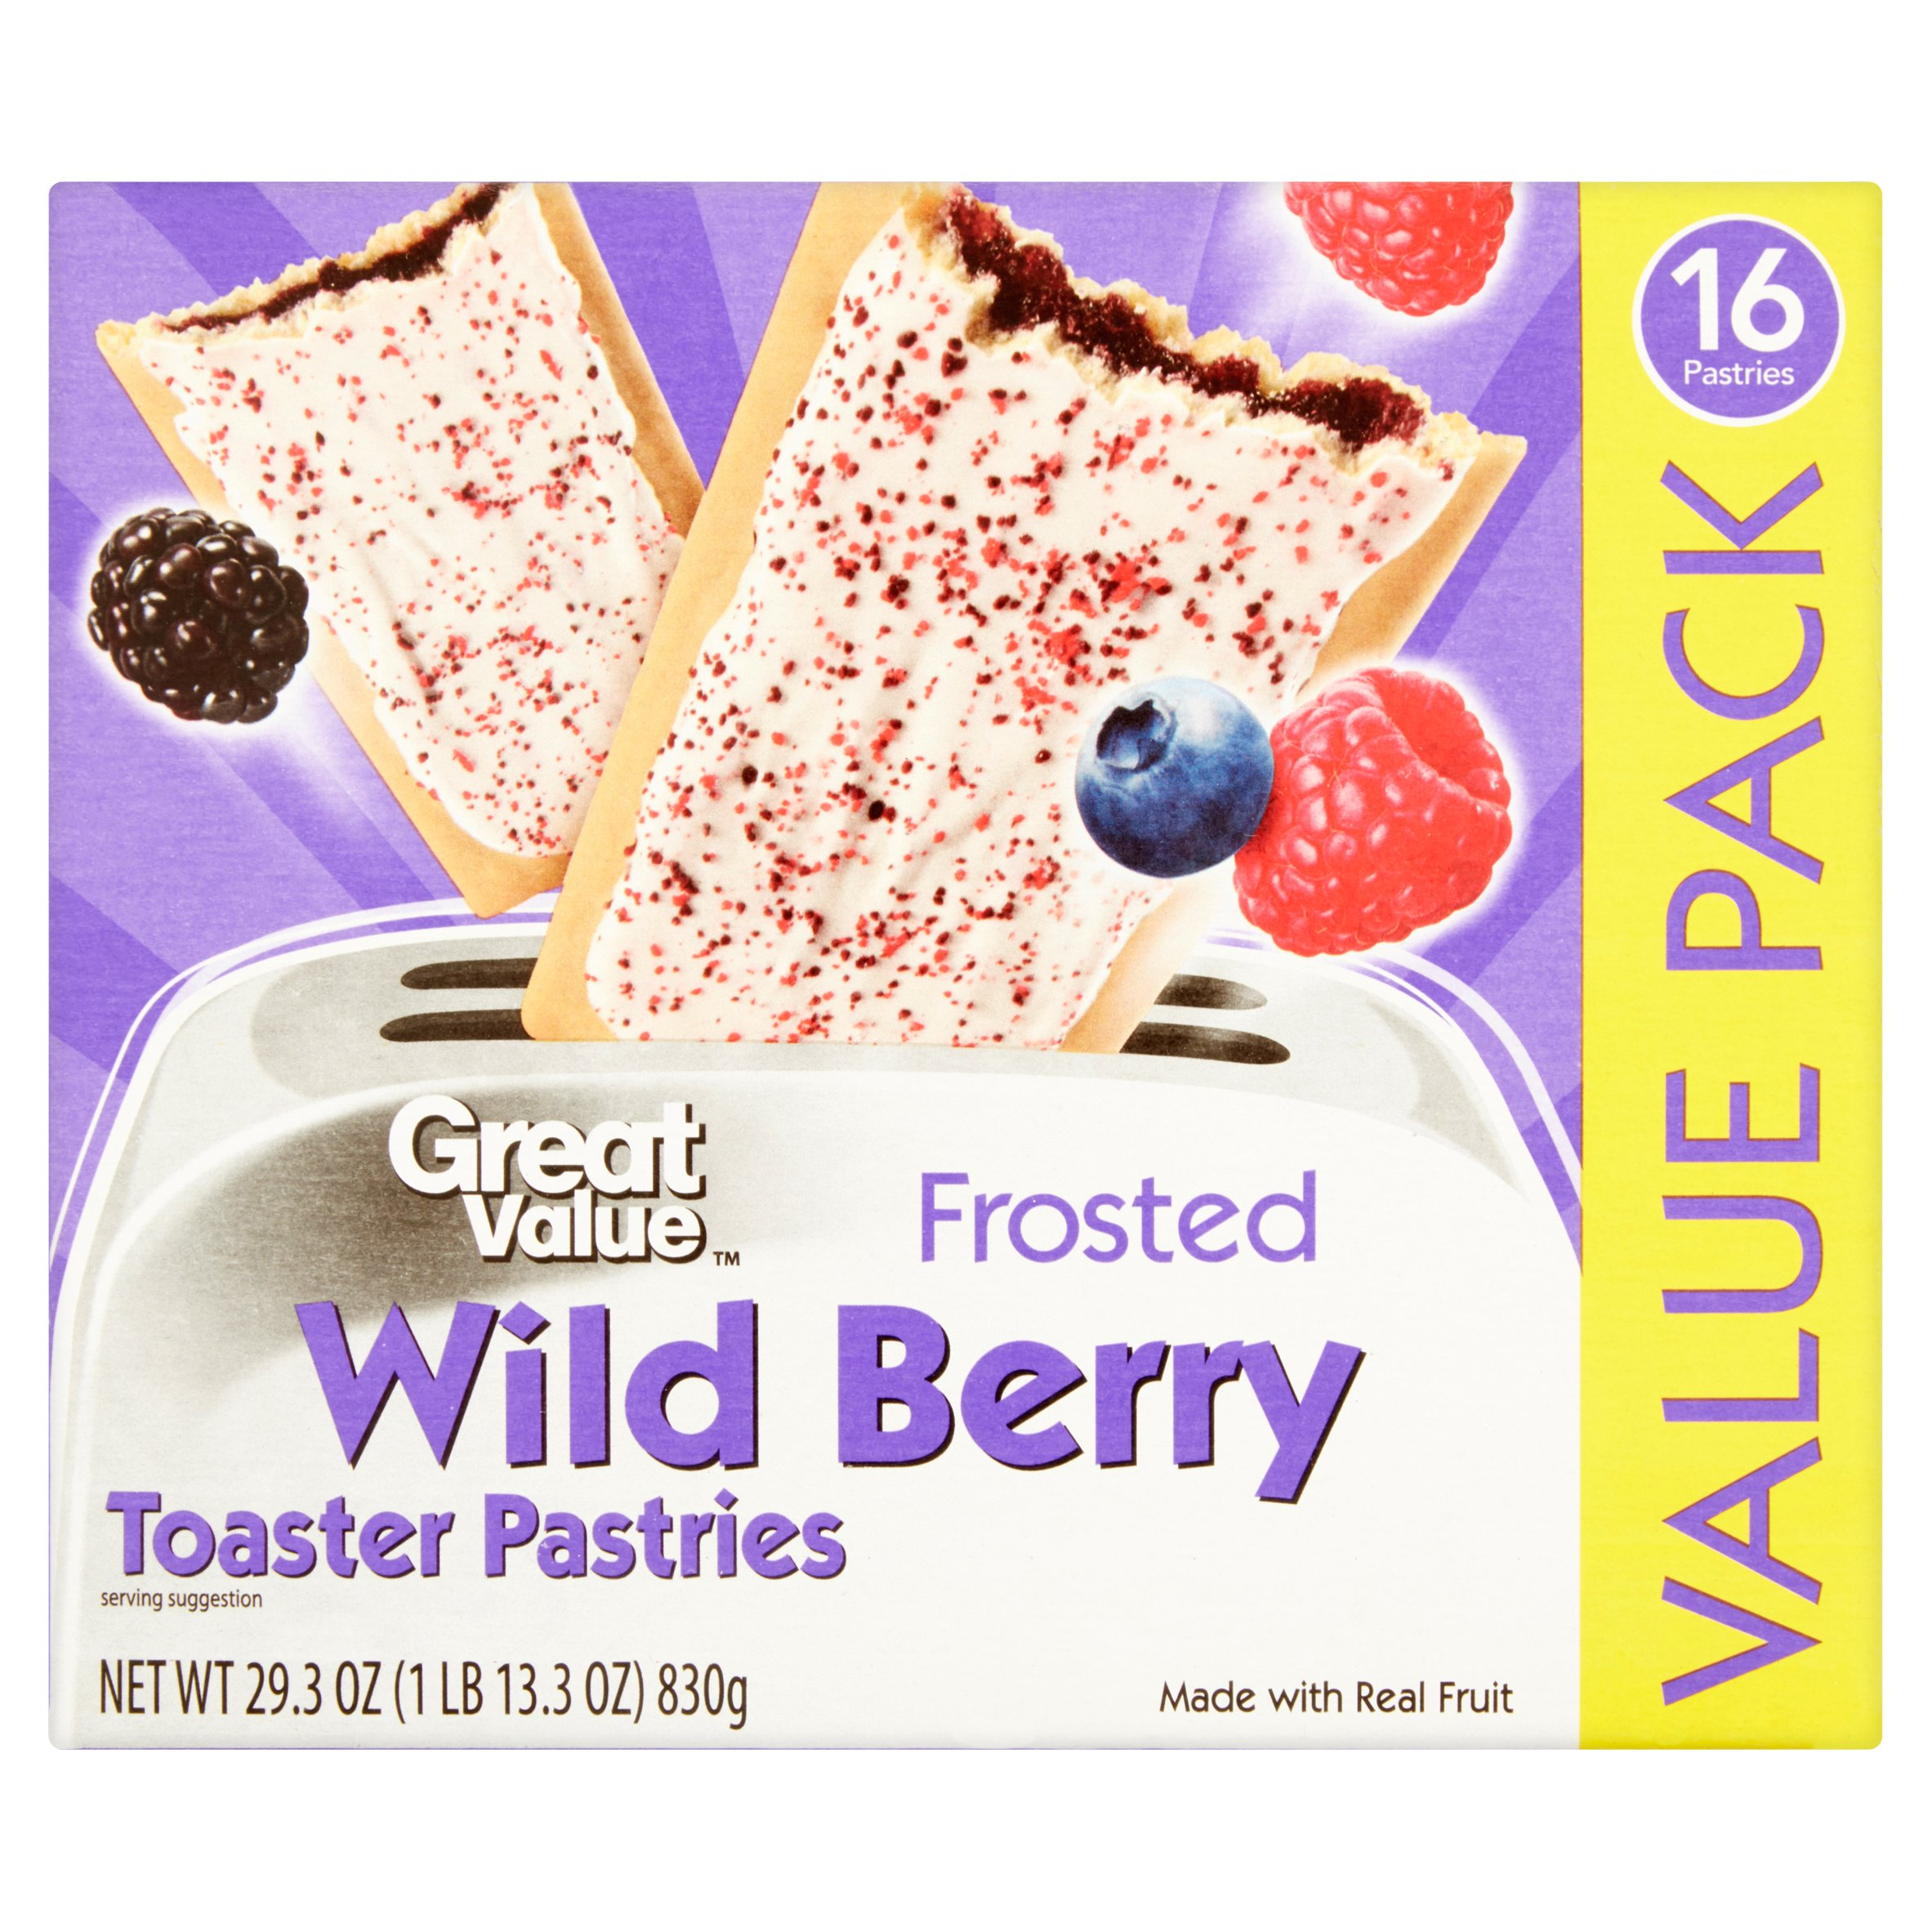 Great Value Frosted Wild Berry Toaster Pastries, 16ct by Wal-Mart Stores, Inc.